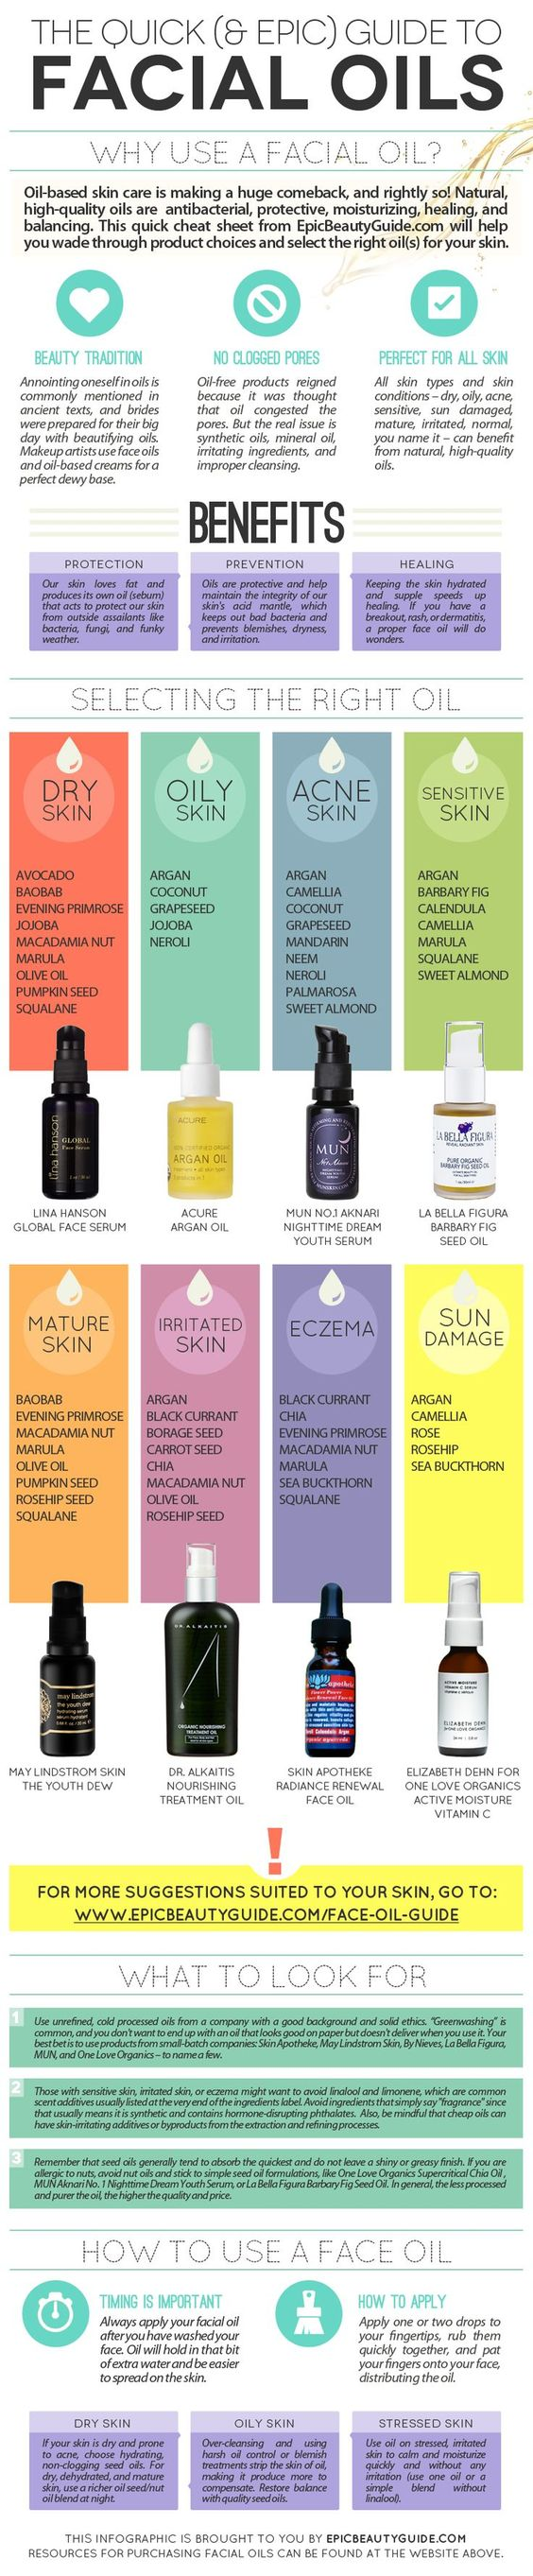 why facial oils.jpg